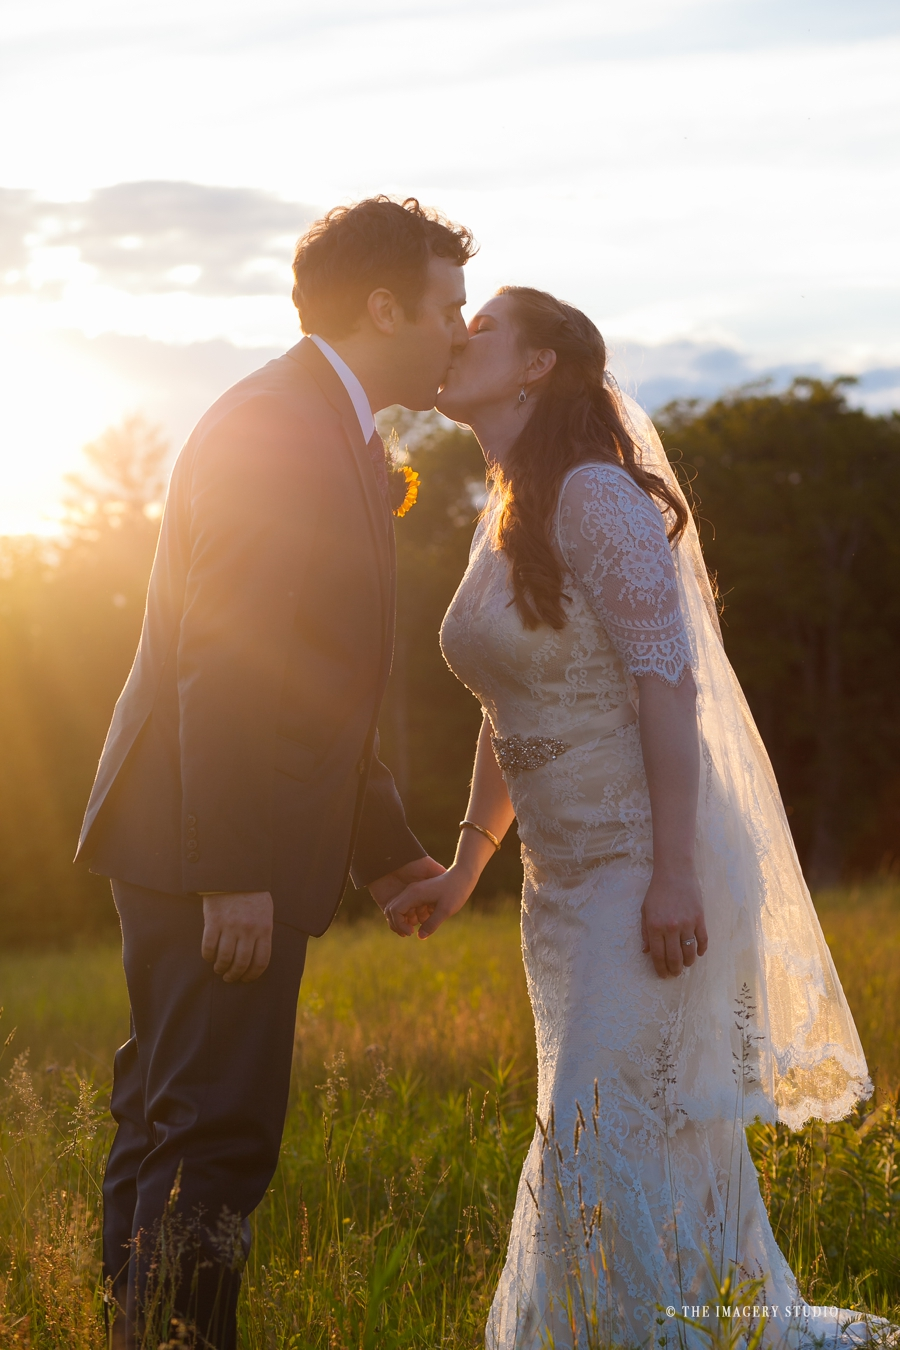 Sunset pictures of a bride and groom at harrington farm